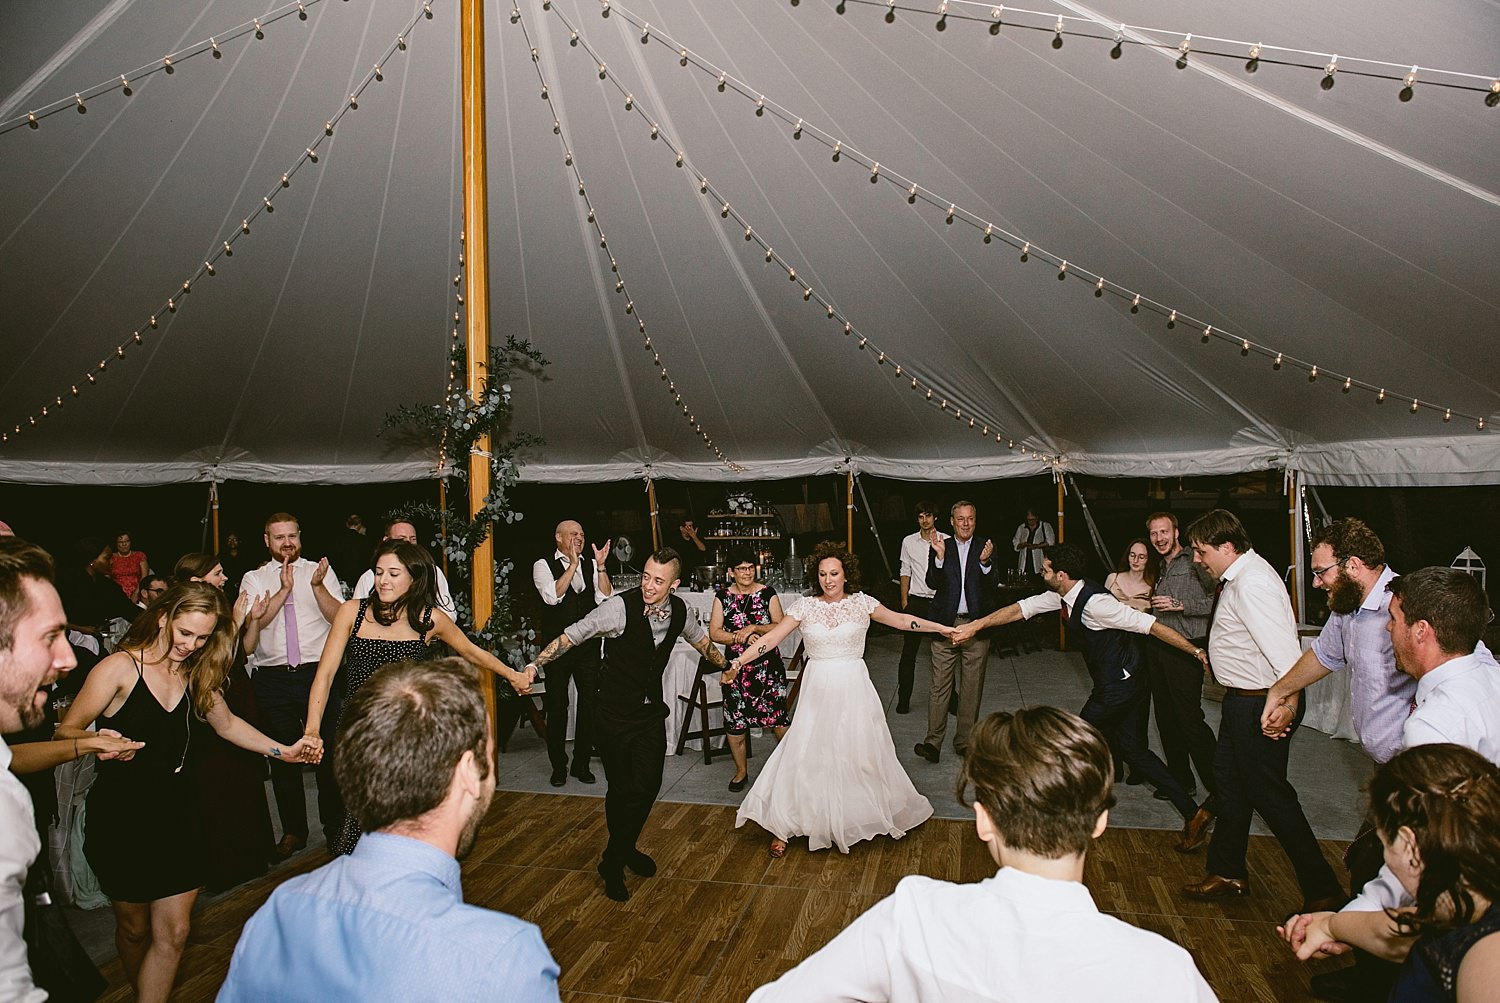 Bride and groom dancing with family